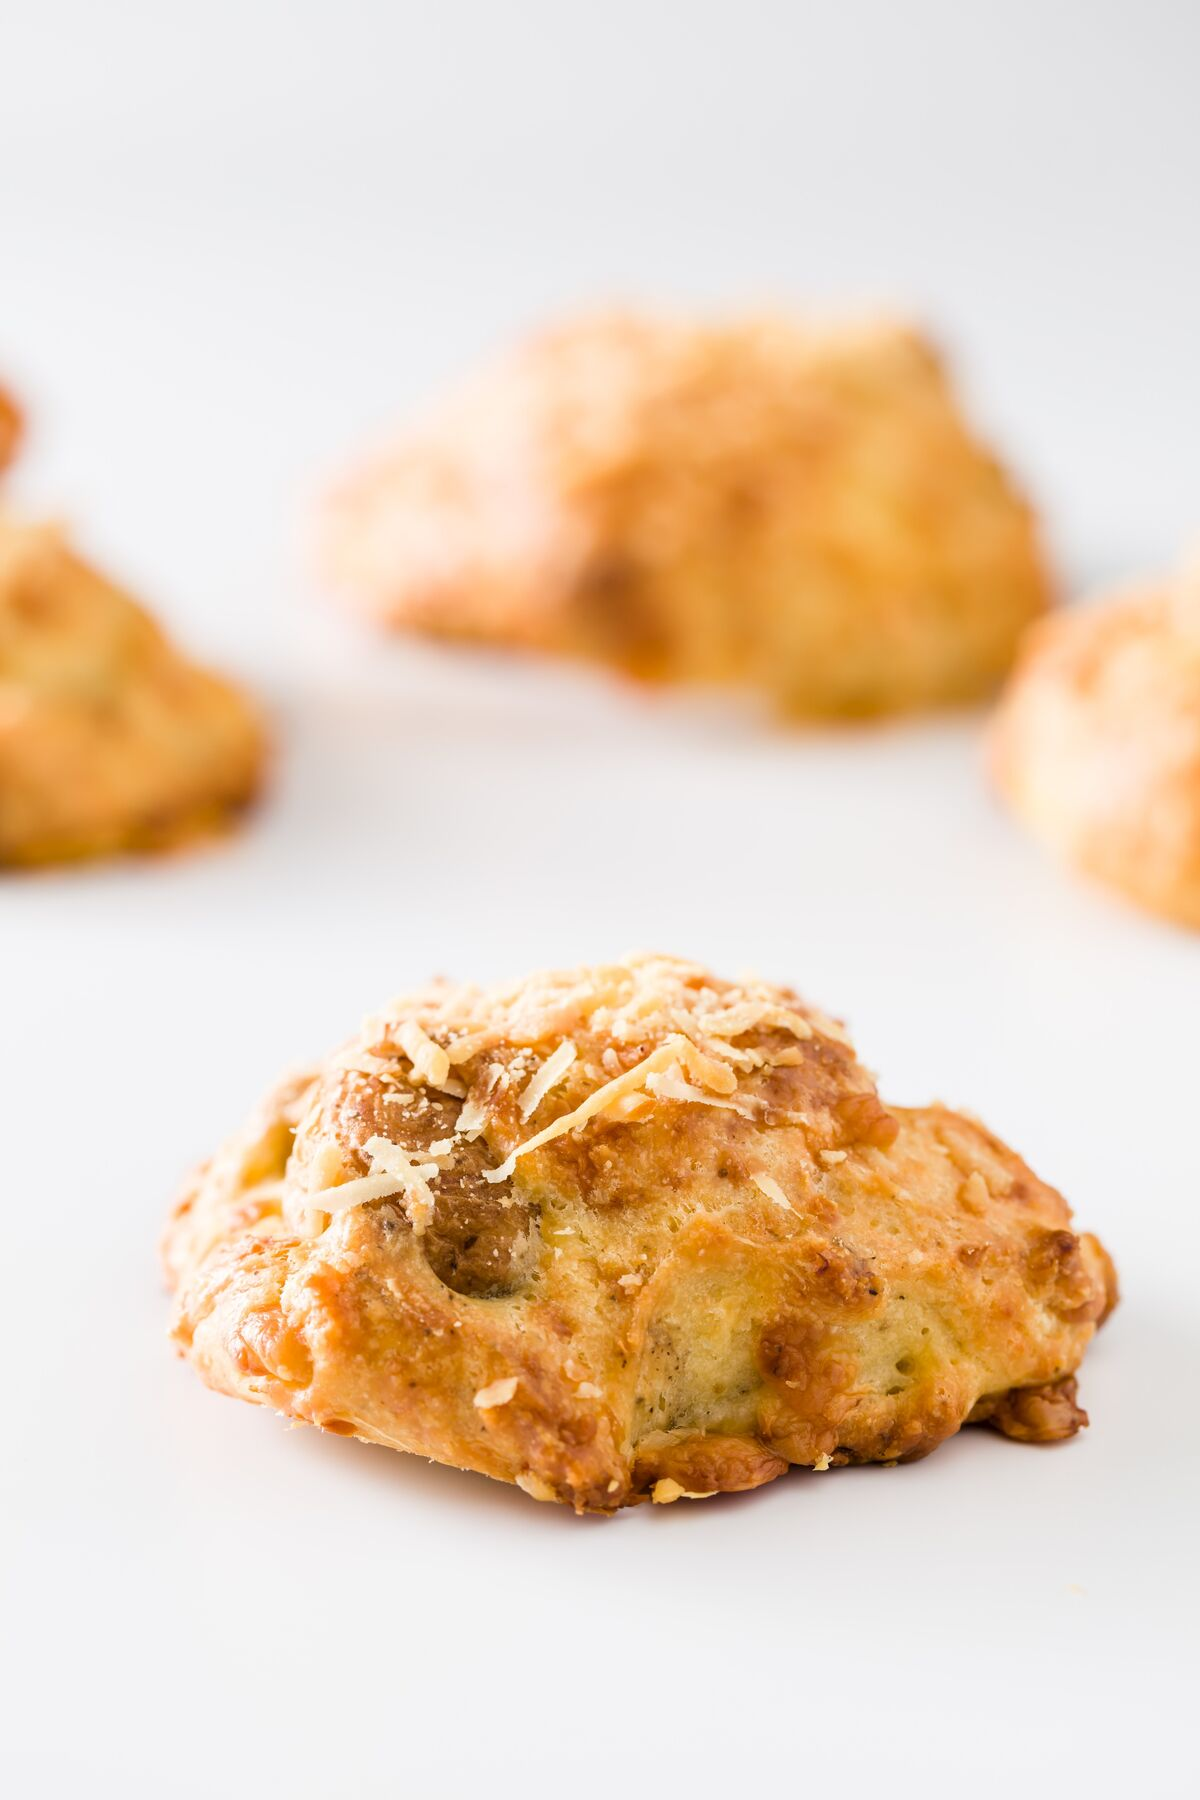 Savory Roasted Garlic and Potato Beer Cheese Scones